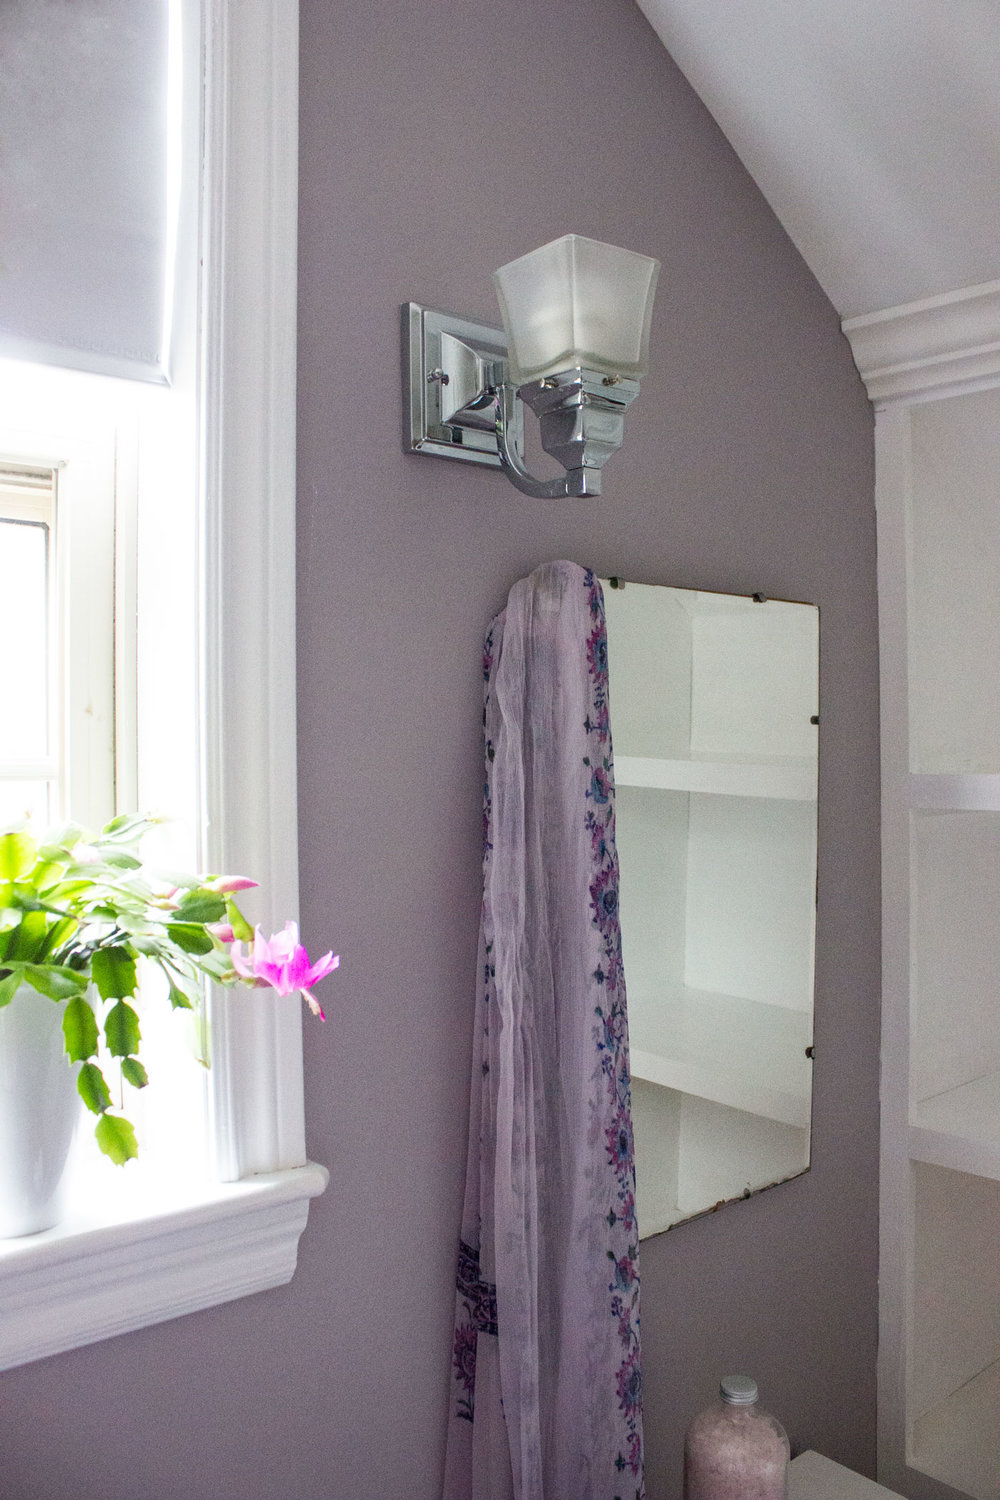 Beauti-Tone Colour of the Year 2017 in Girls Bathroom